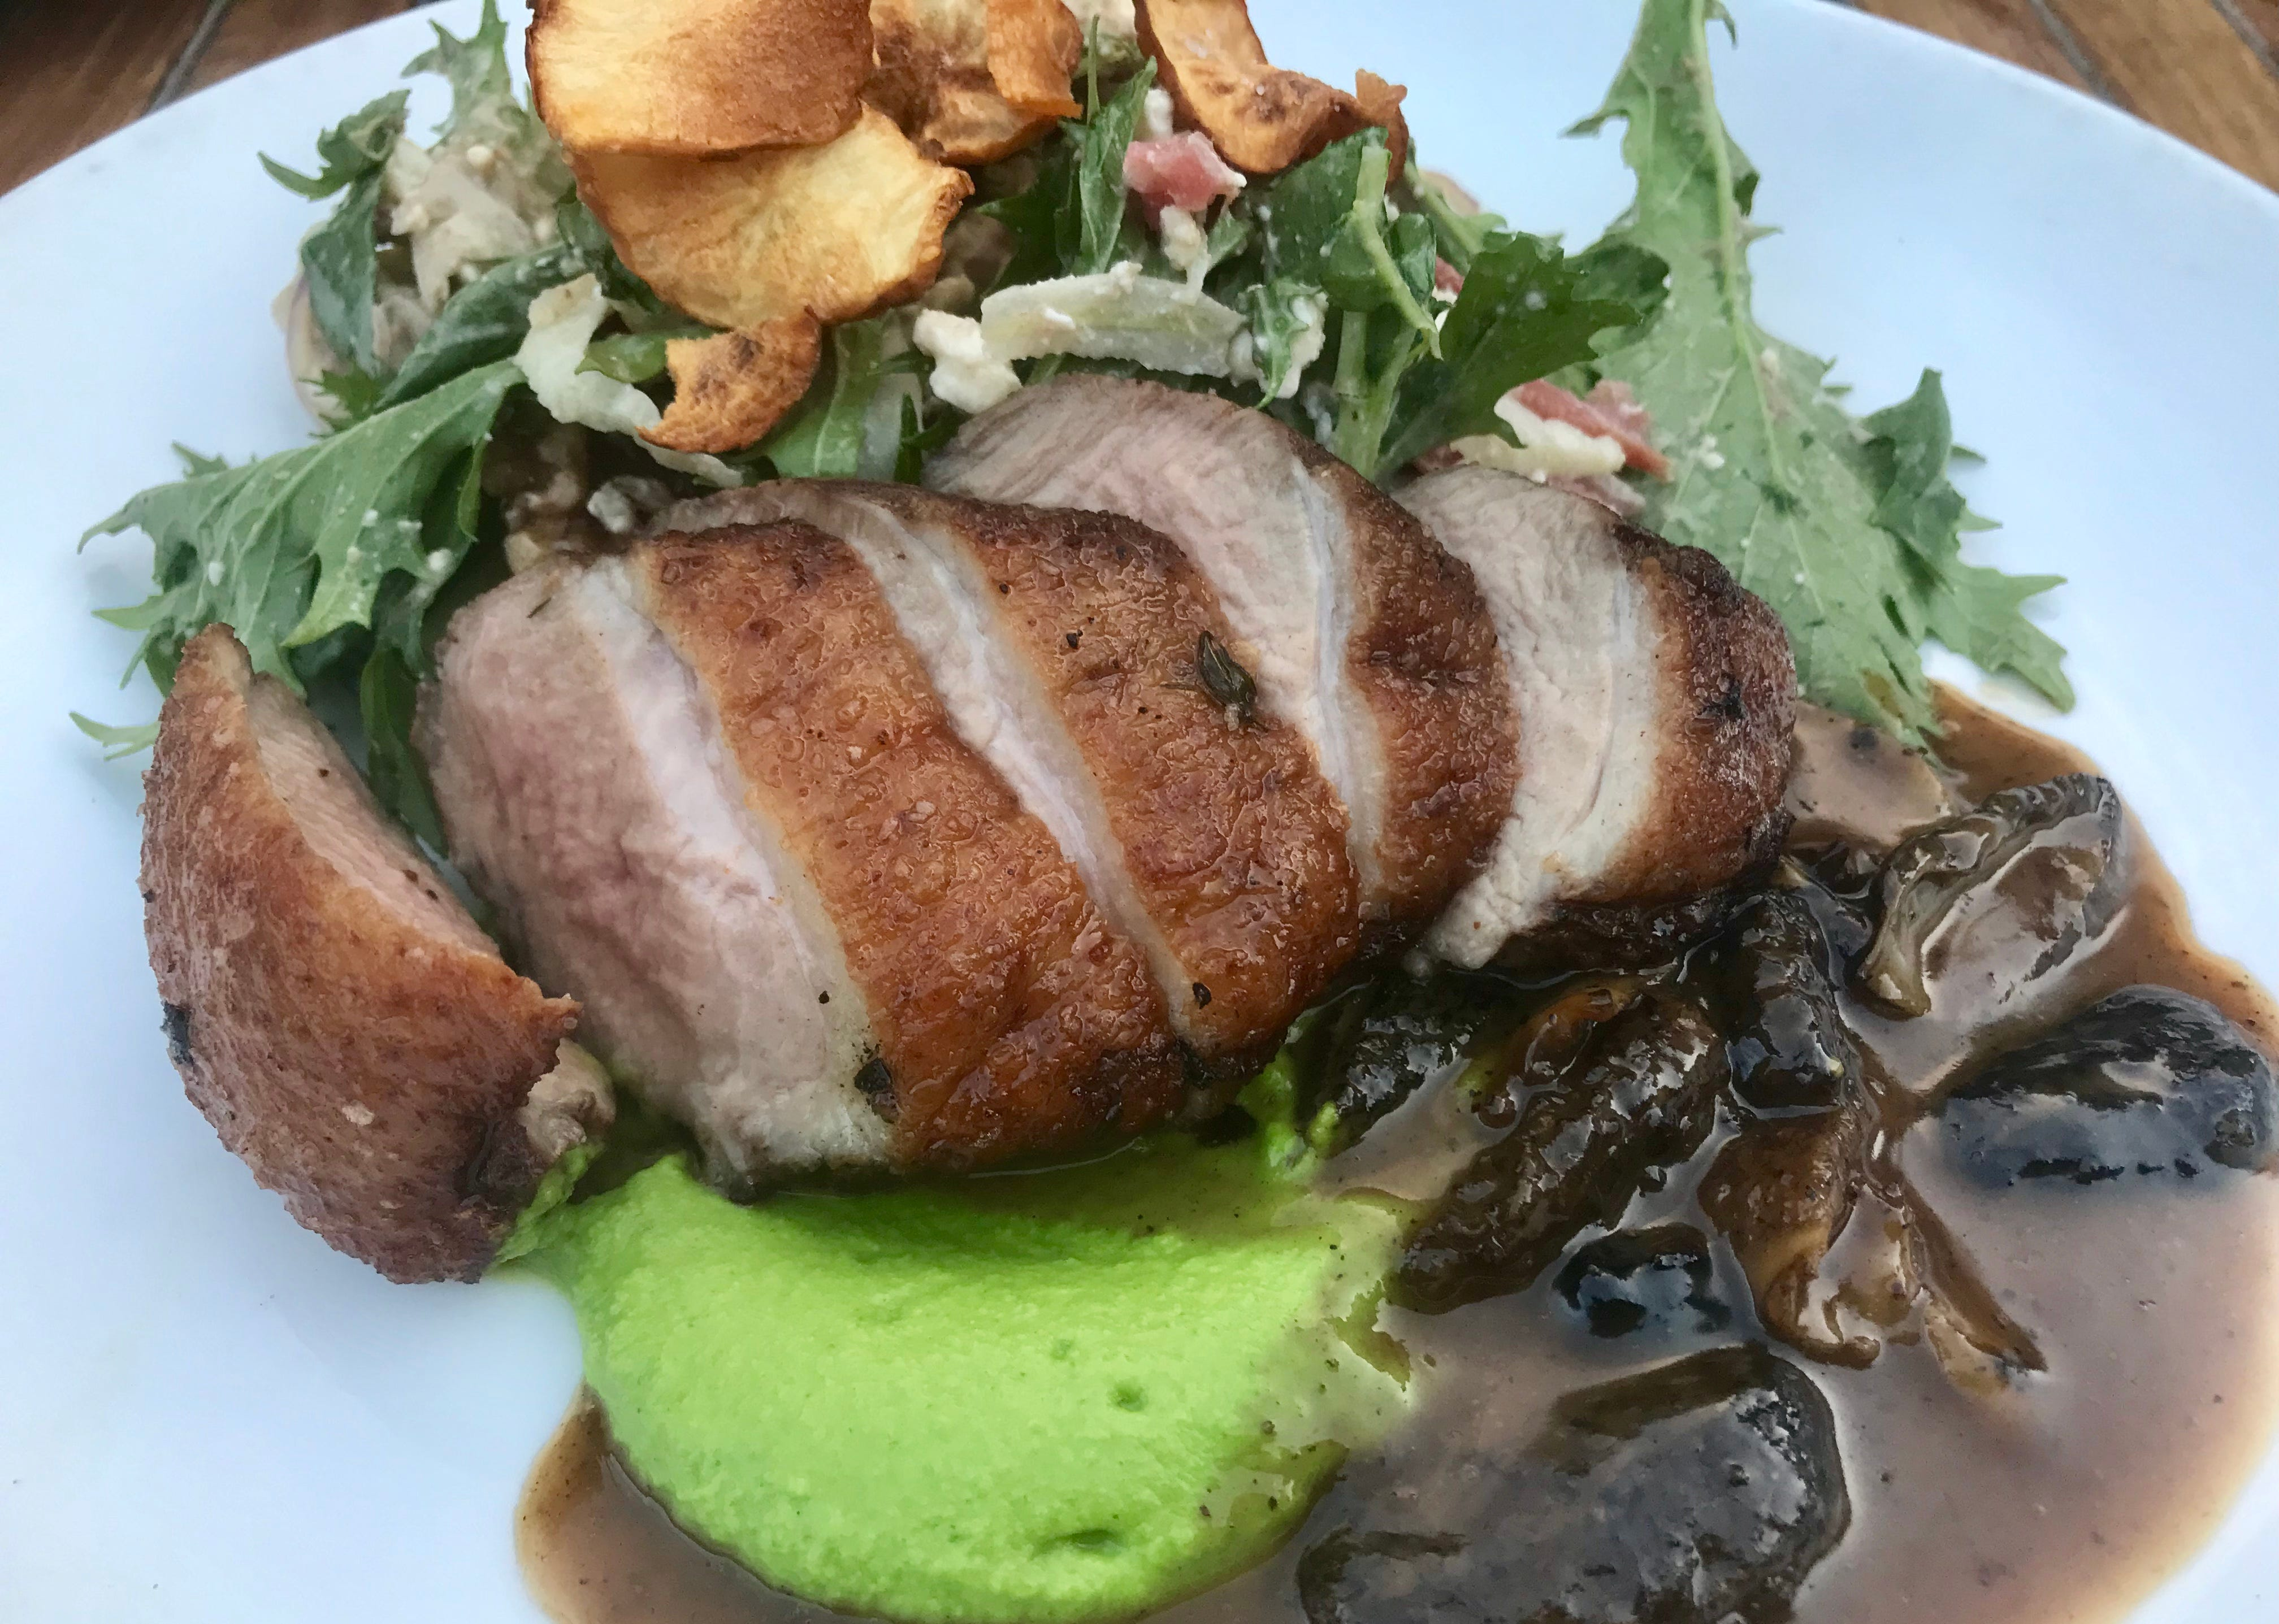 Morel, 430 S. Second St., works with whole animals; nothing goes to waste. Duck breast in summer was served with an excellent salad of mizuna, hickory nuts, radish and rhubarb in duck-liver vinaigrette.